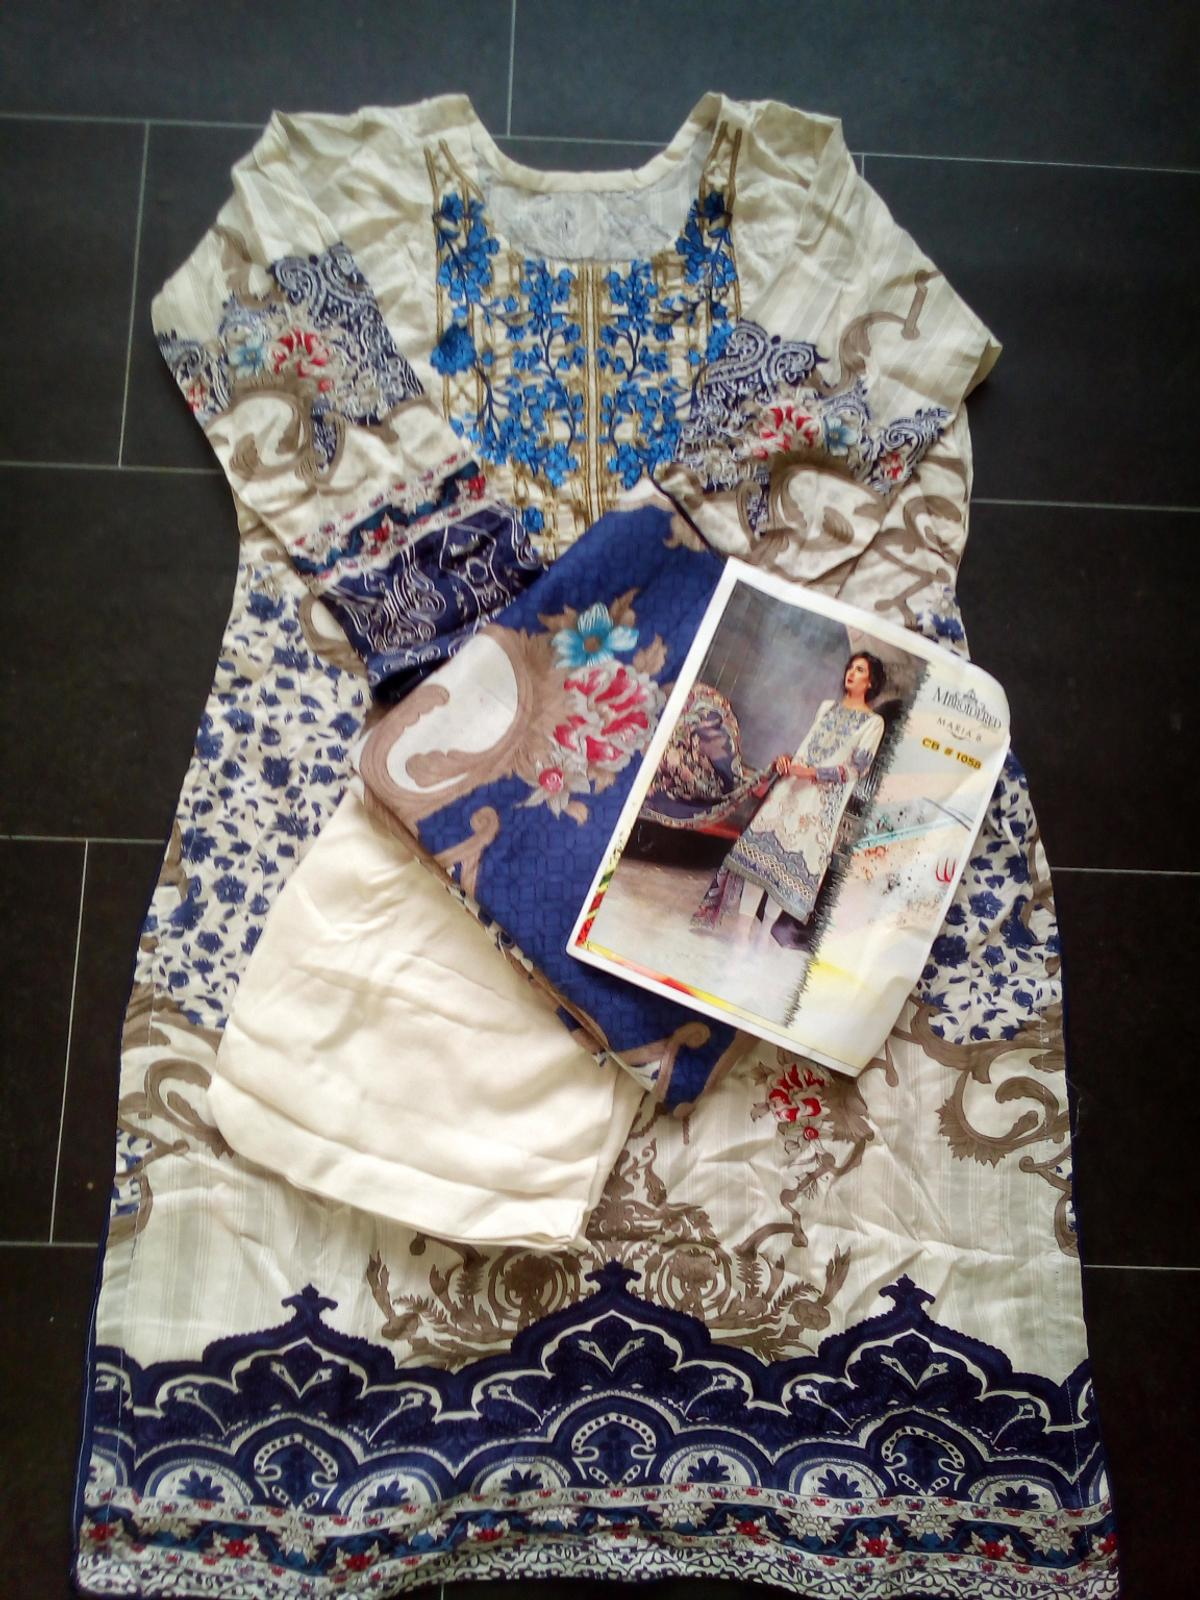 19eeb4f377 Readymade Asian suits in B4 Birmingham for £17.00 for sale - Shpock